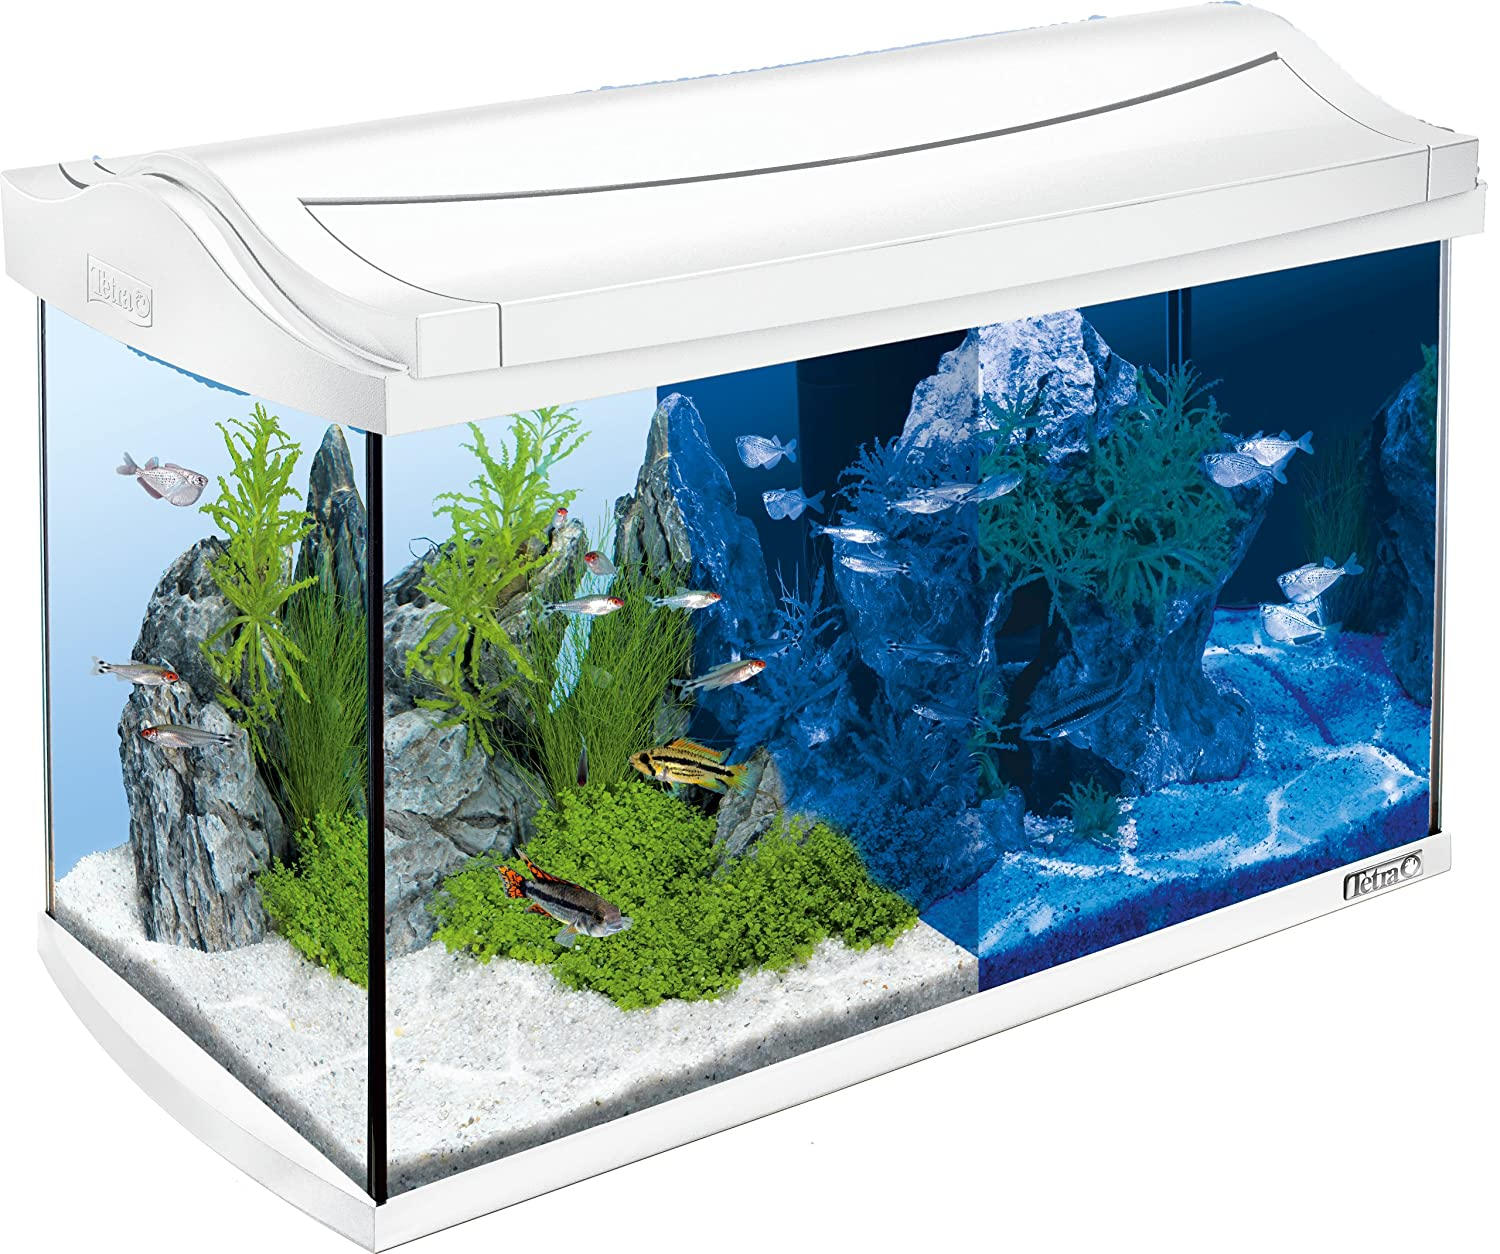 Acuario Tetra AquaArt LED 60 l Blanco 60 L white: Amazon.es: Productos para mascotas